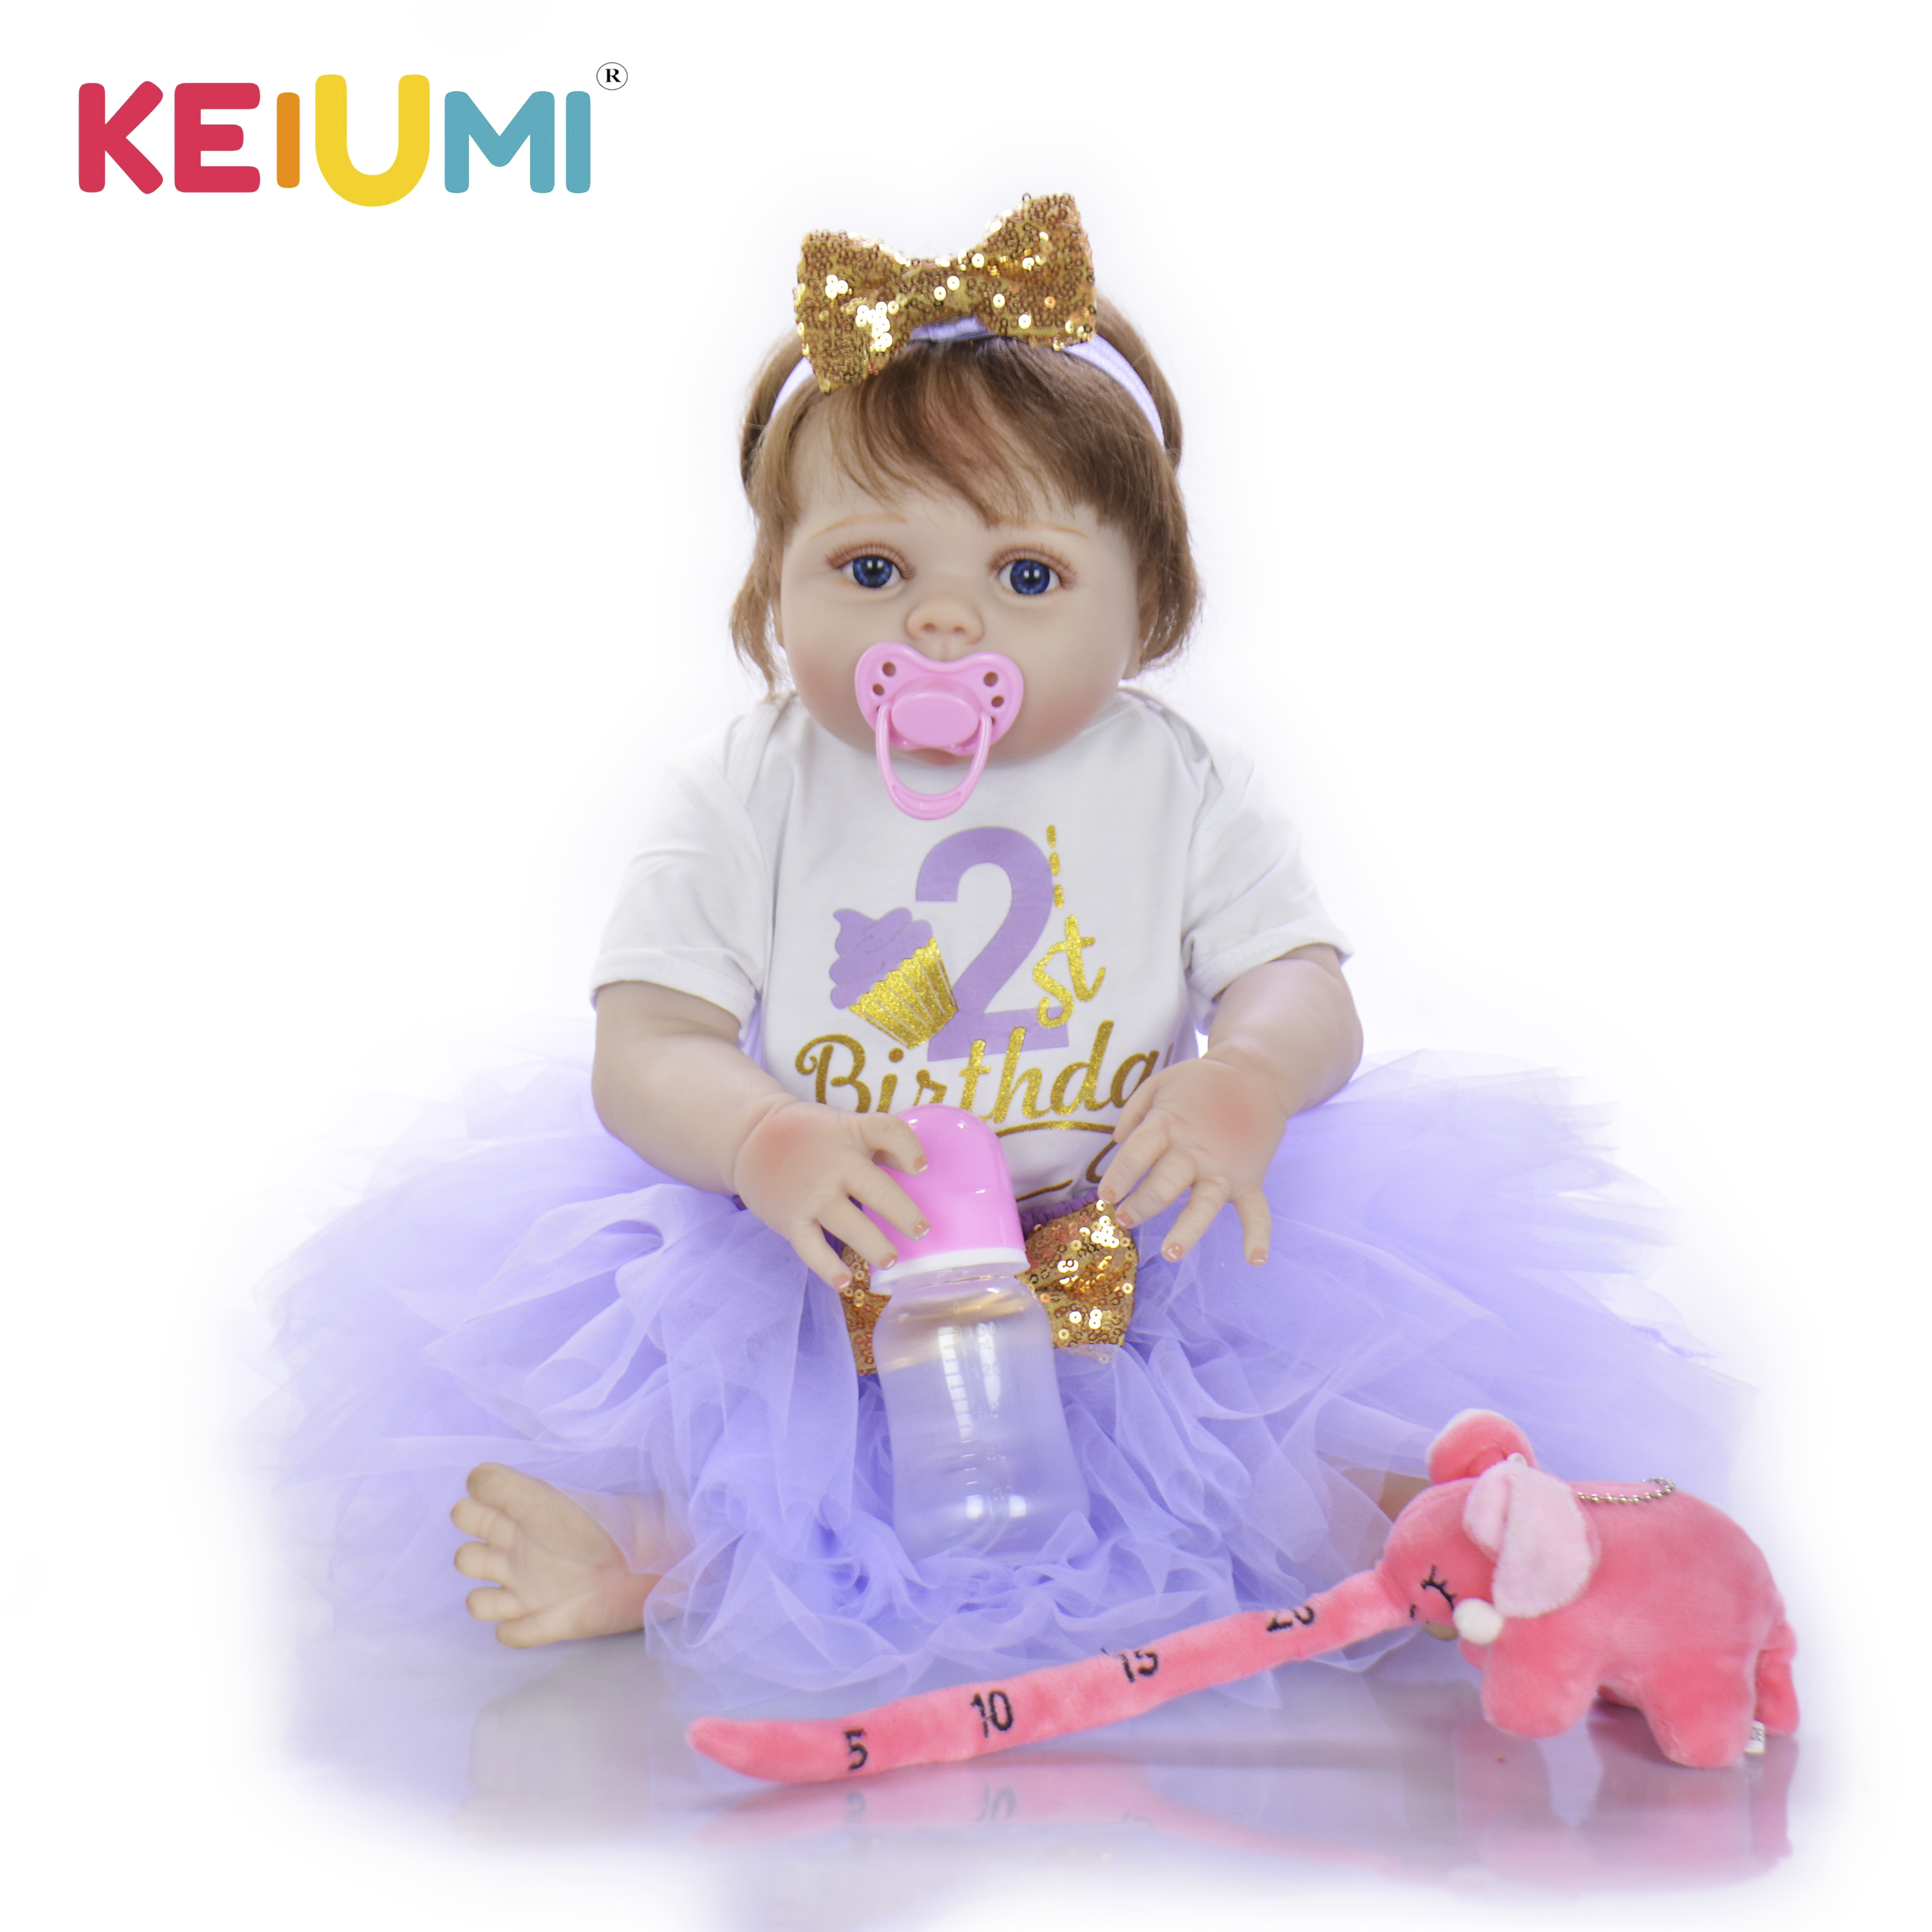 23 Inch Handmade Reborn Baby Doll Full Body Silicone Lifelike Princess Girl Babies Toy For Kids